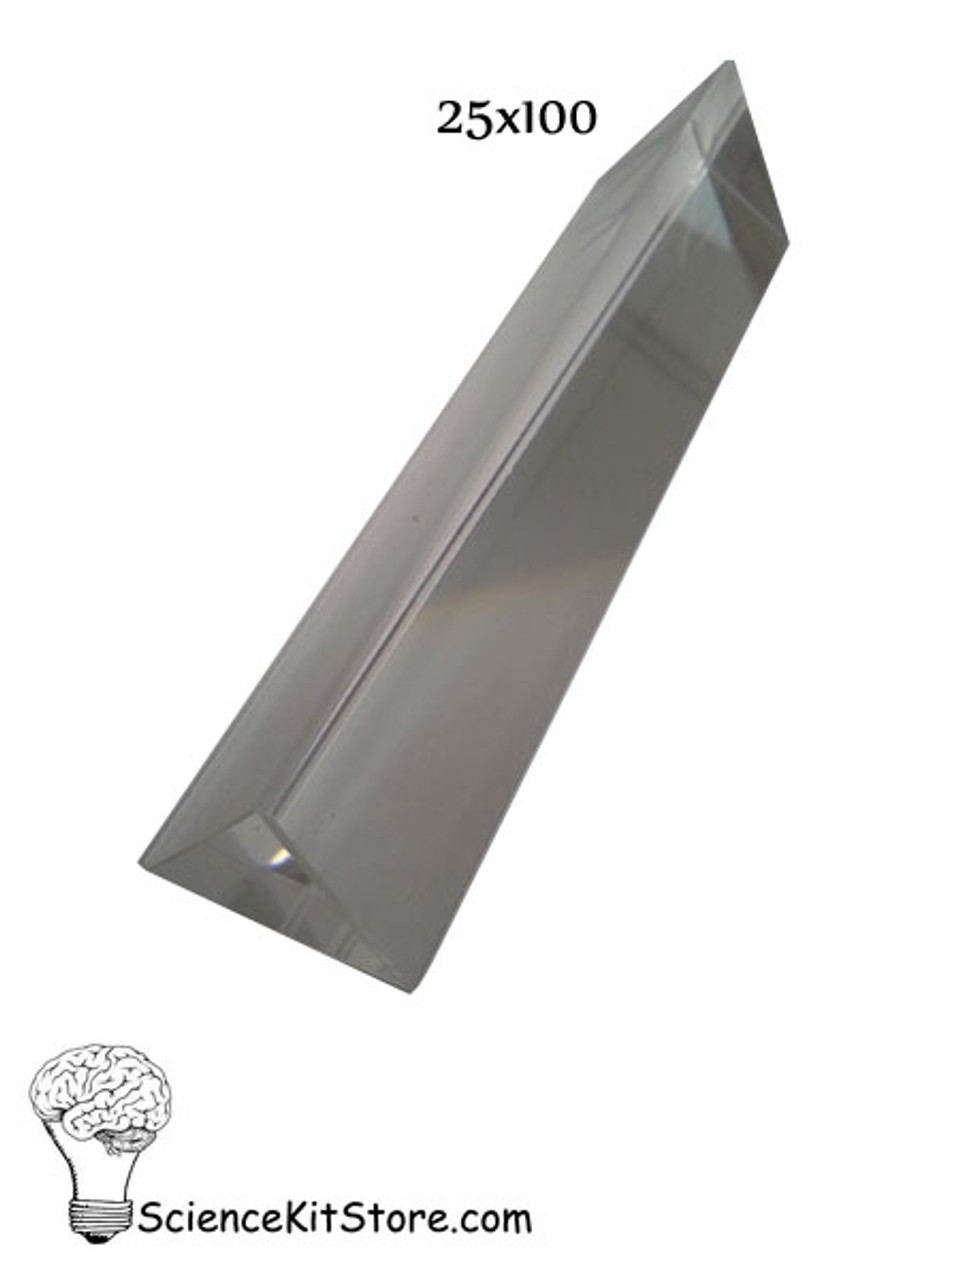 Glass Prism, Equilateral (Length 100 mm, Face 25mm)